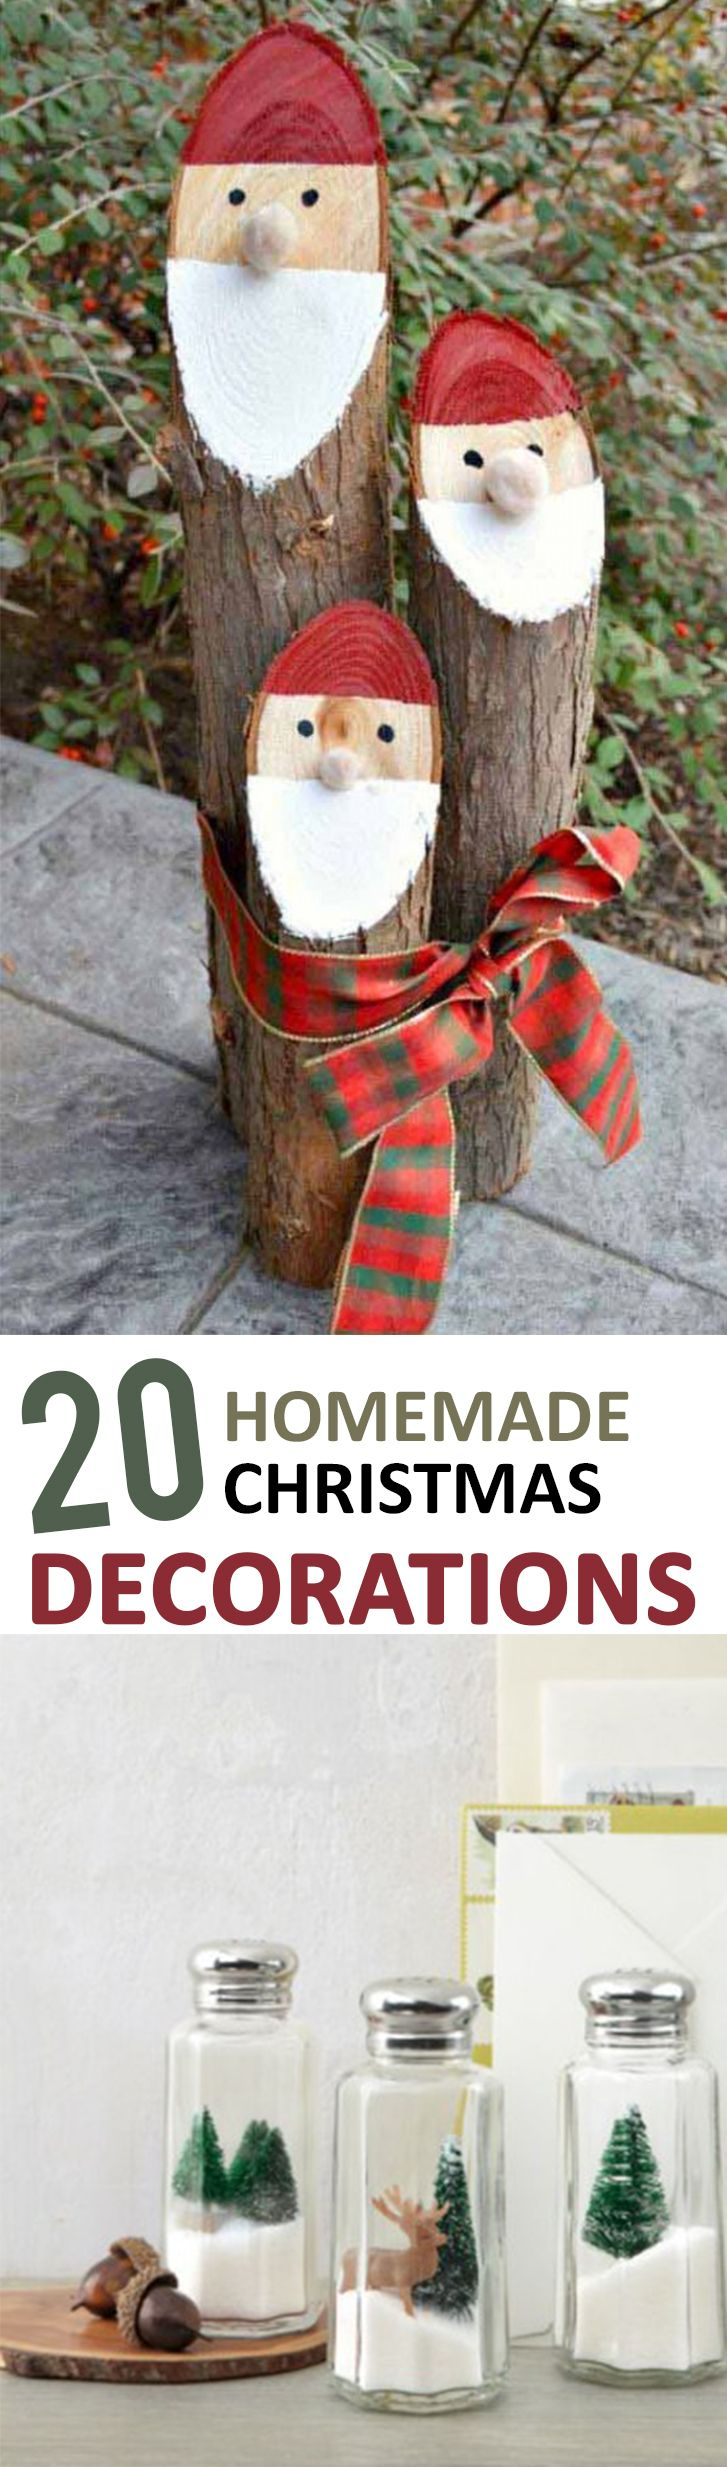 20 homemade christmas decorations - Homemade Home Decor